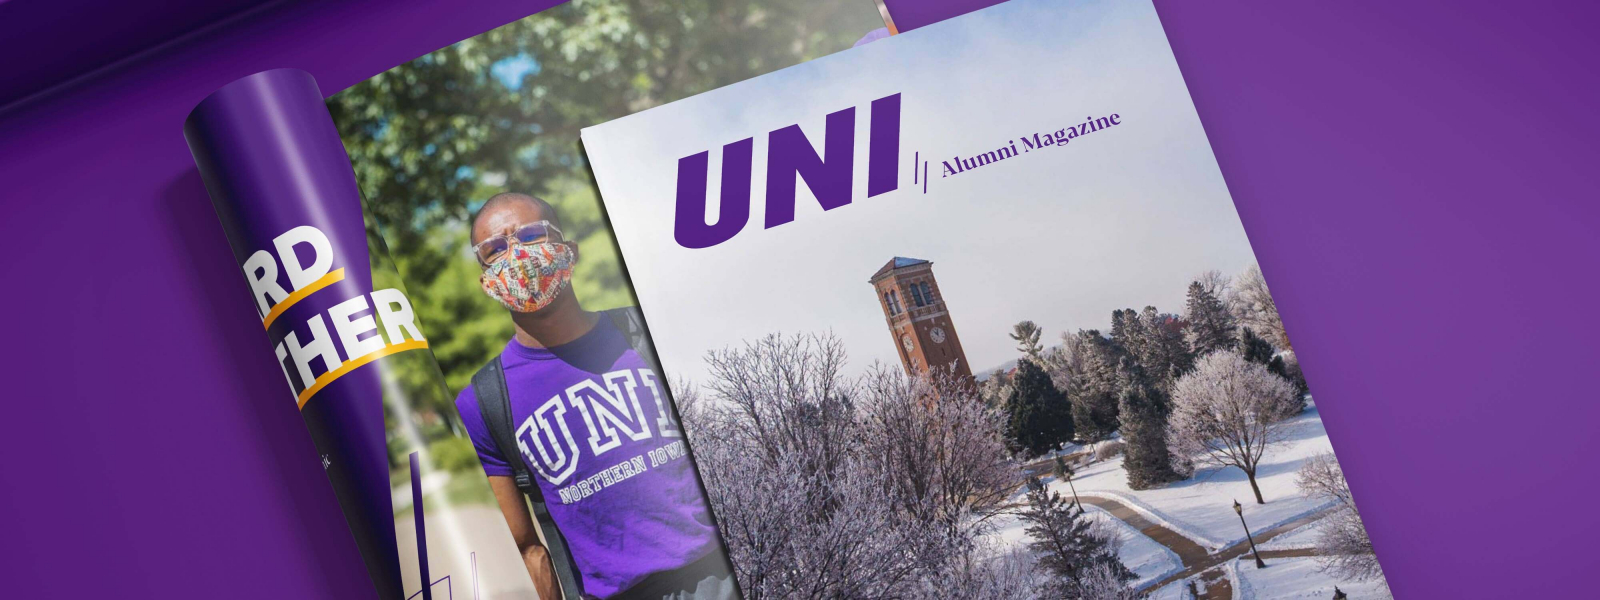 UNI Magazine cover and interior feature of UNI student wearing mask